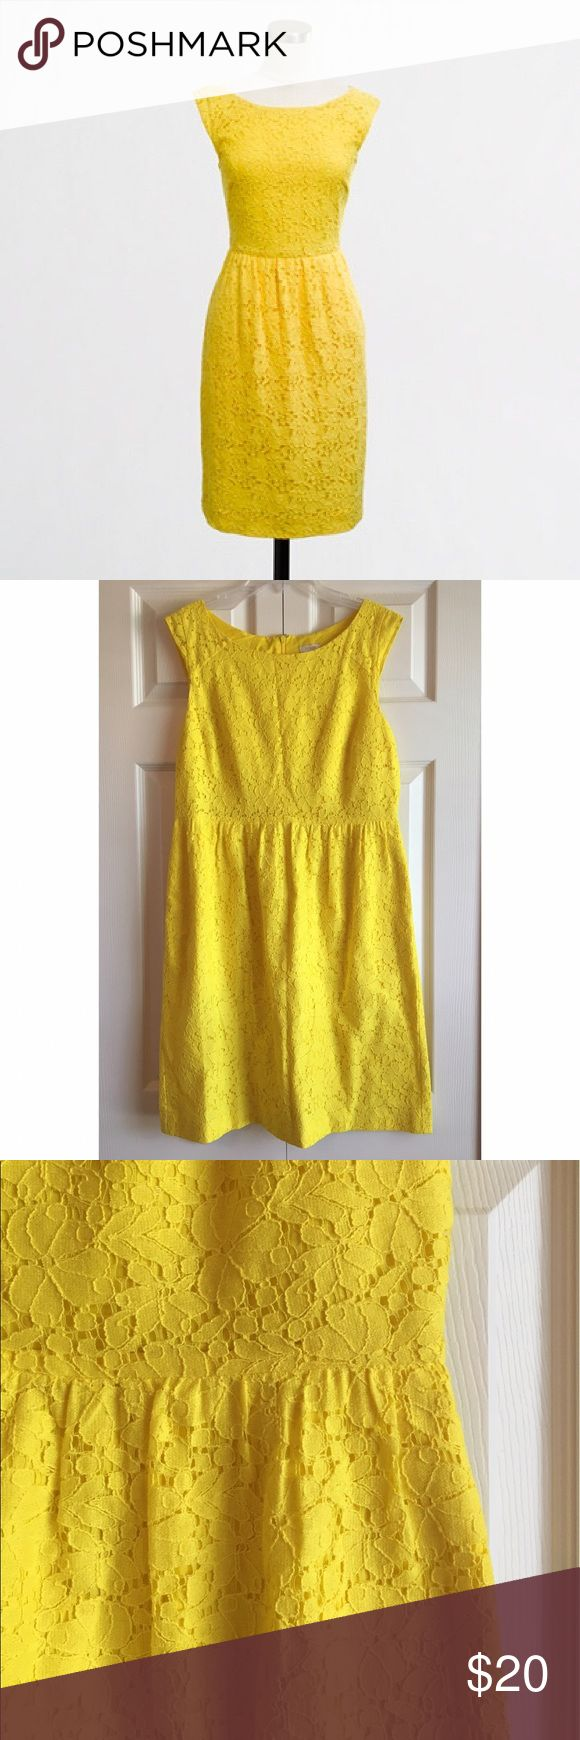 J. Crew Yellow Lace Dress Worn once • synched at natural waste • fully lined • back zipper J.Crew Factory Dresses